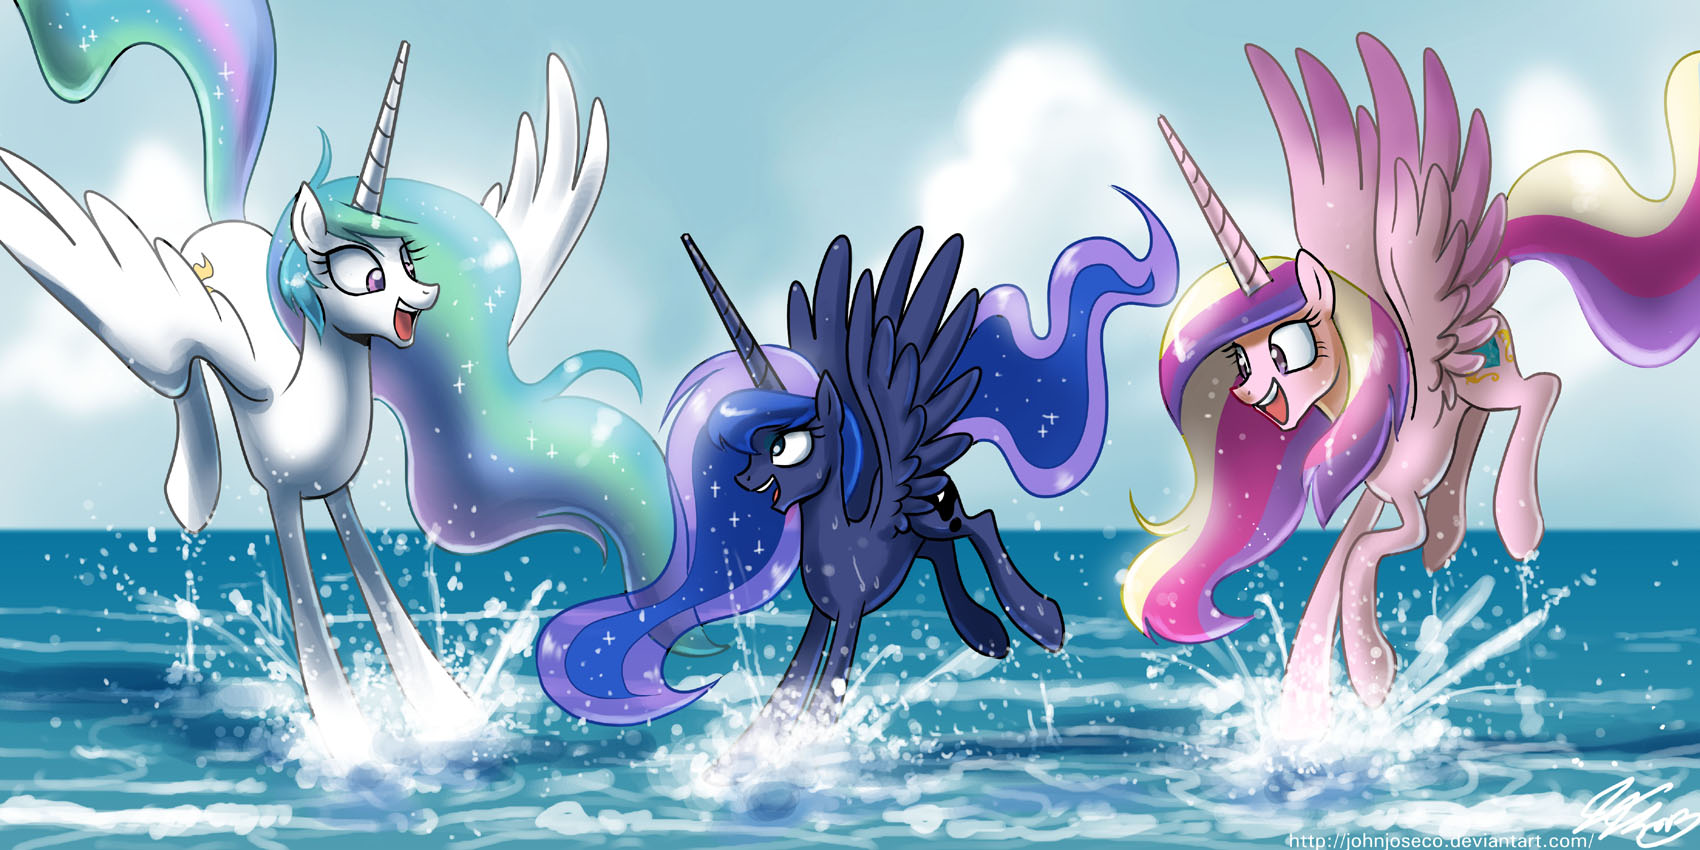 Royal Fun at the Beach by johnjoseco